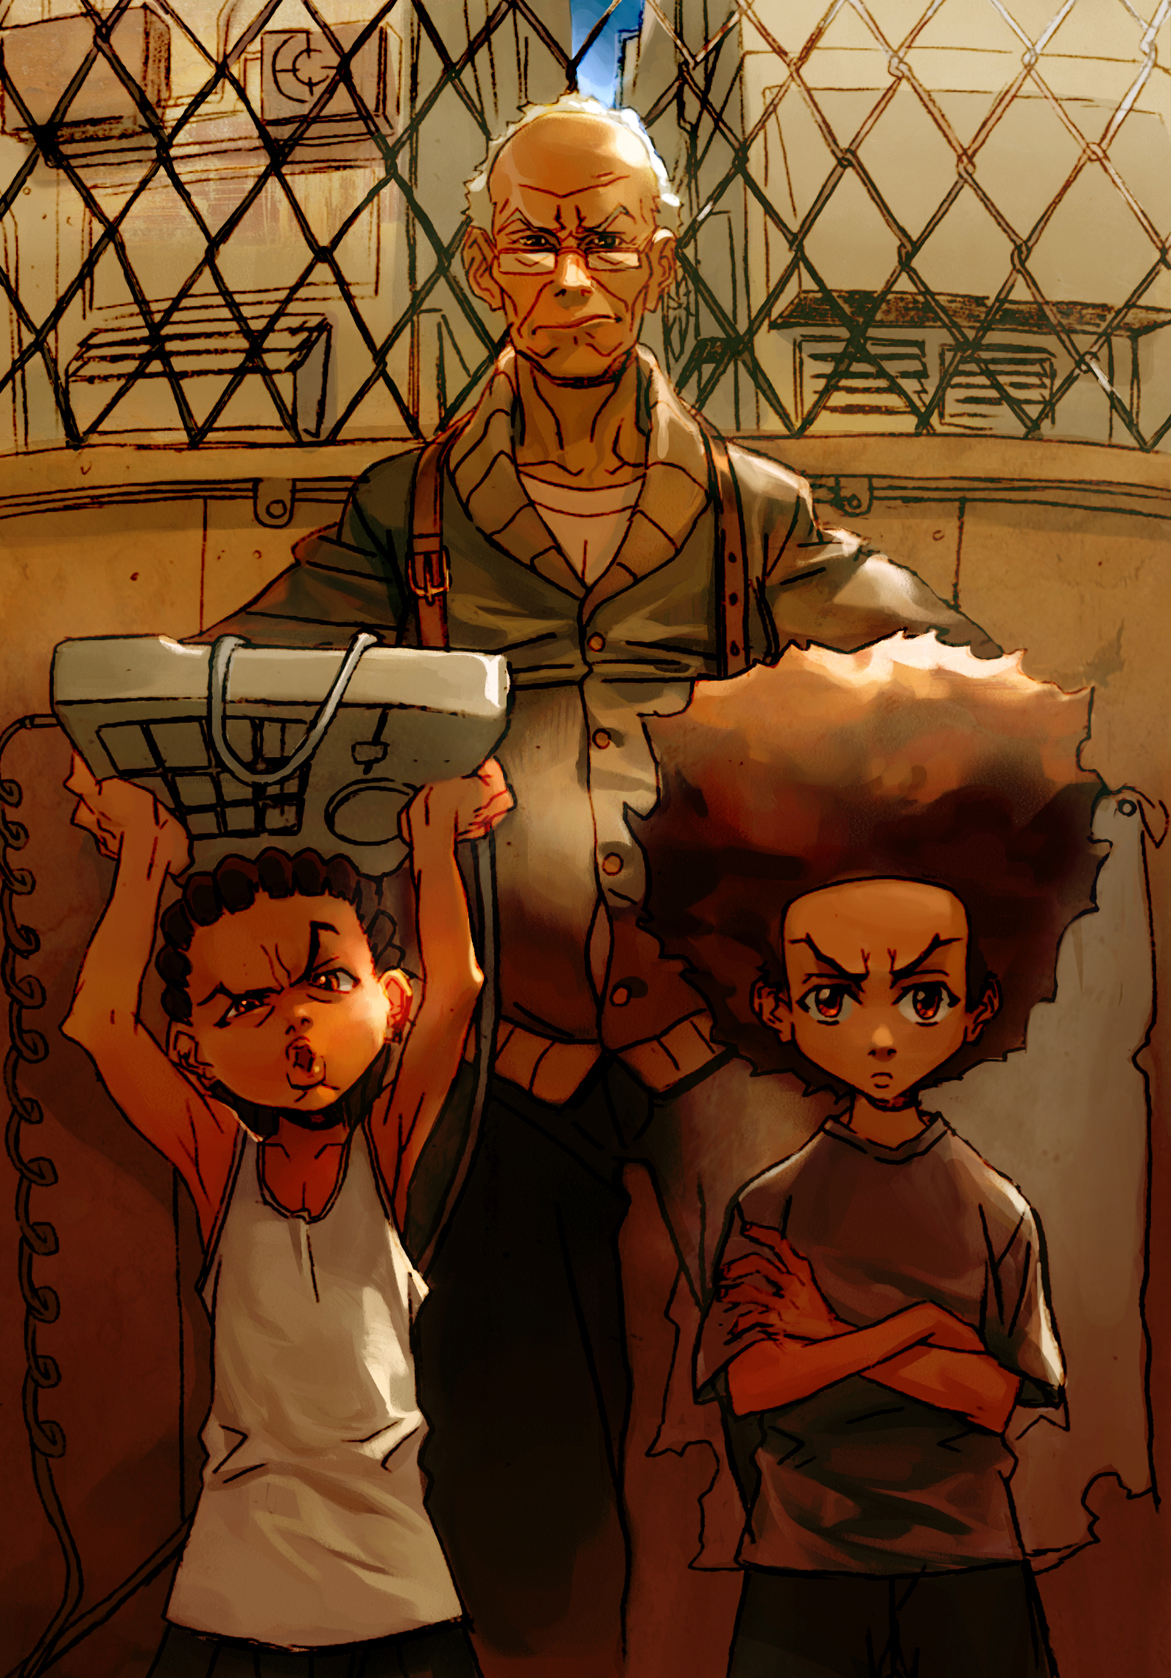 Free Download The Boondocks Wallpaper 1171x1678 The